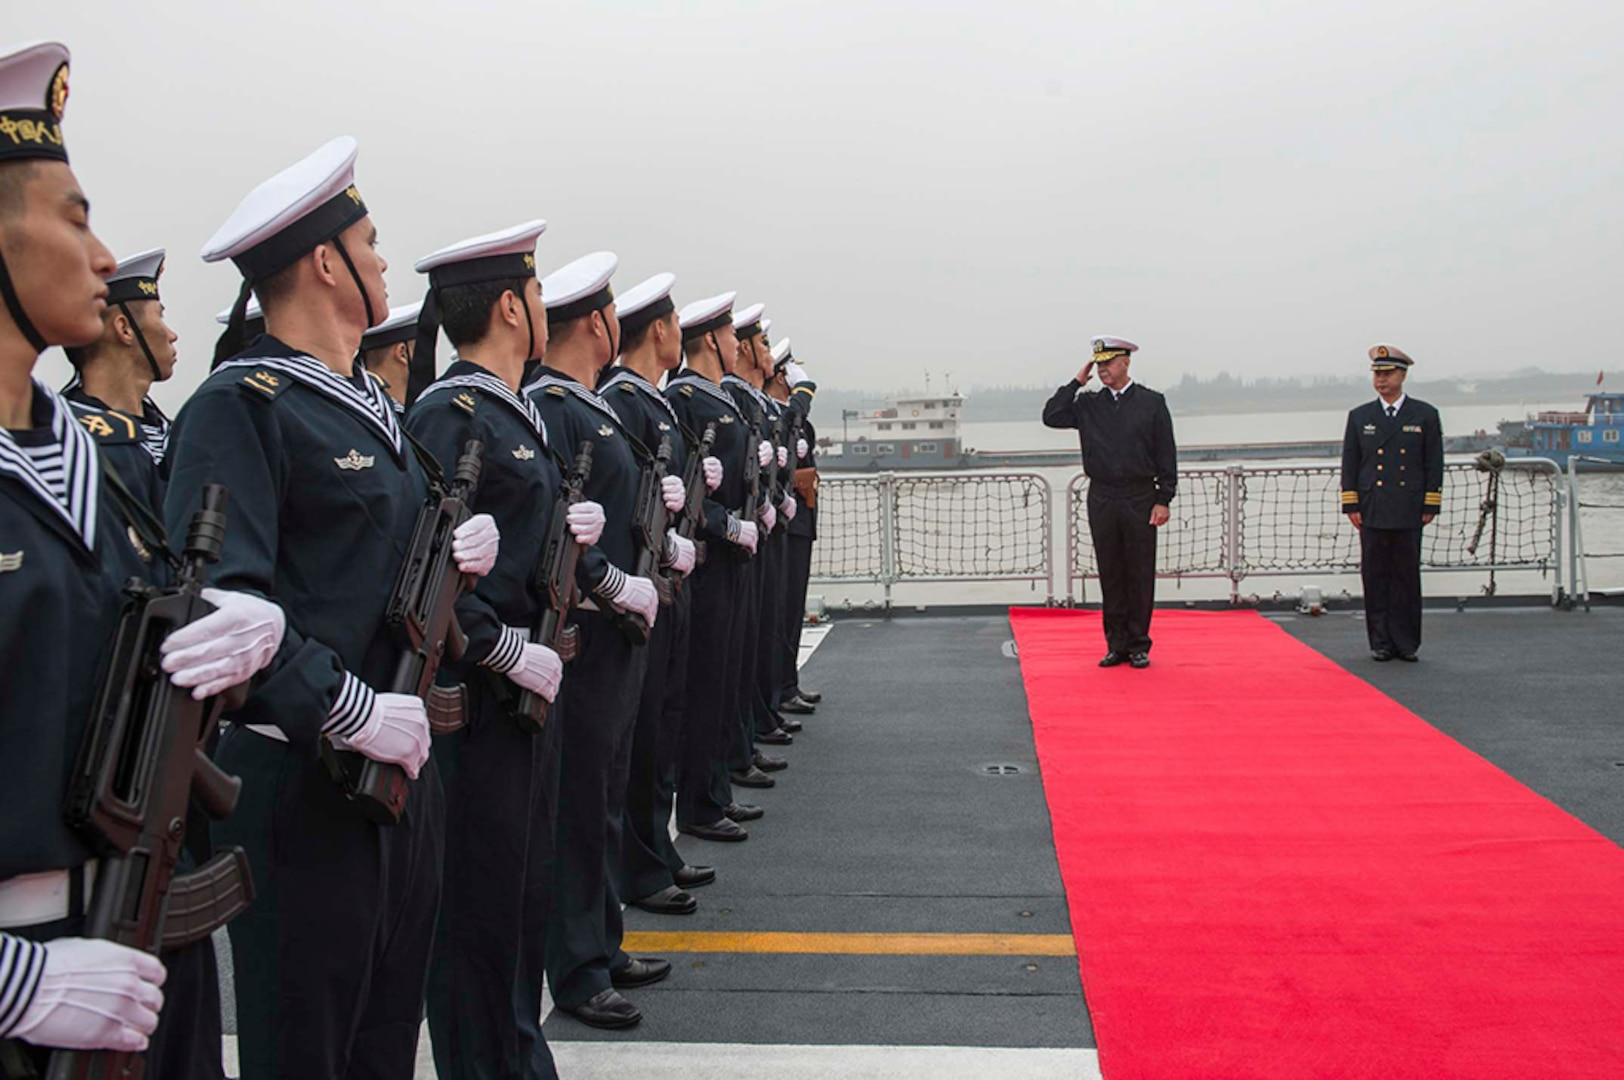 SHANGHAI (Nov. 17, 2015) Adm. Scott H. Swift, commander U.S. Pacific Fleet, inspects sailors of the People's Liberation Army Navy Jiangkai II class guided-missile frigate Xuzhou (FFG 530) during a pass and review prior to touring the ship during a scheduled port visit of the forward-deployed Arleigh Burke-class guided missile destroyer USS Stethem (DDG 63). Stethem is in Shanghai to build relationships with the PLA Navy and demonstrate the U.S. Navy's commitment to the Indo-Asia-Pacific.